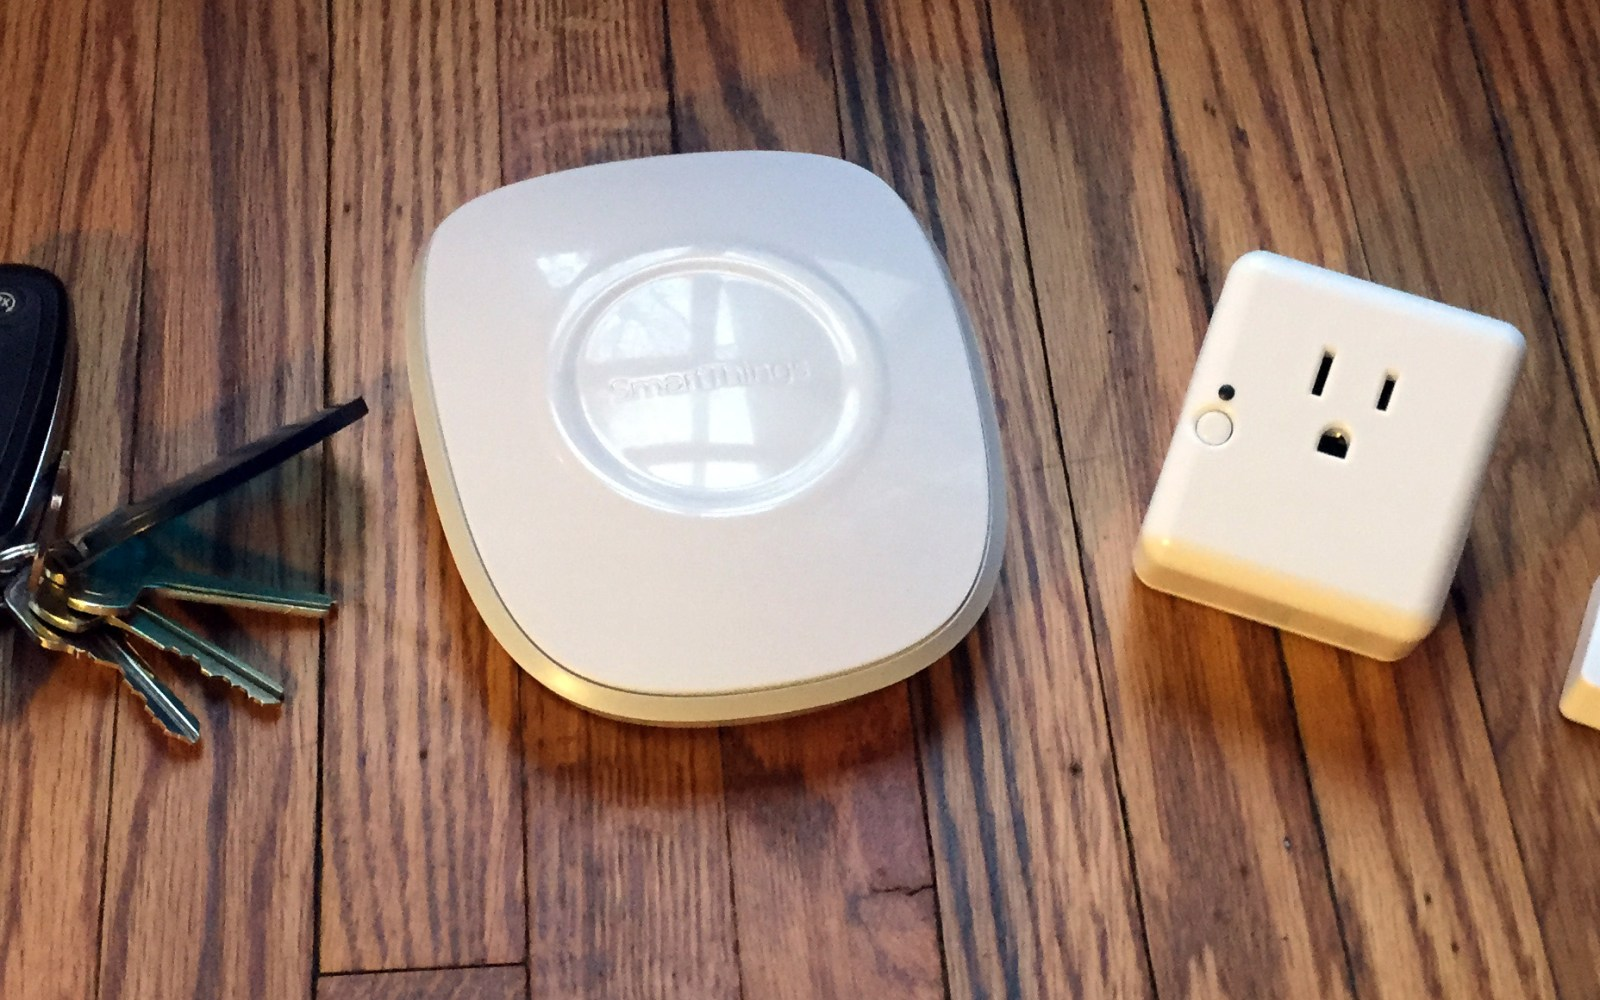 Review: SmartThings offers an open and flexible home automation experience with a few caveats